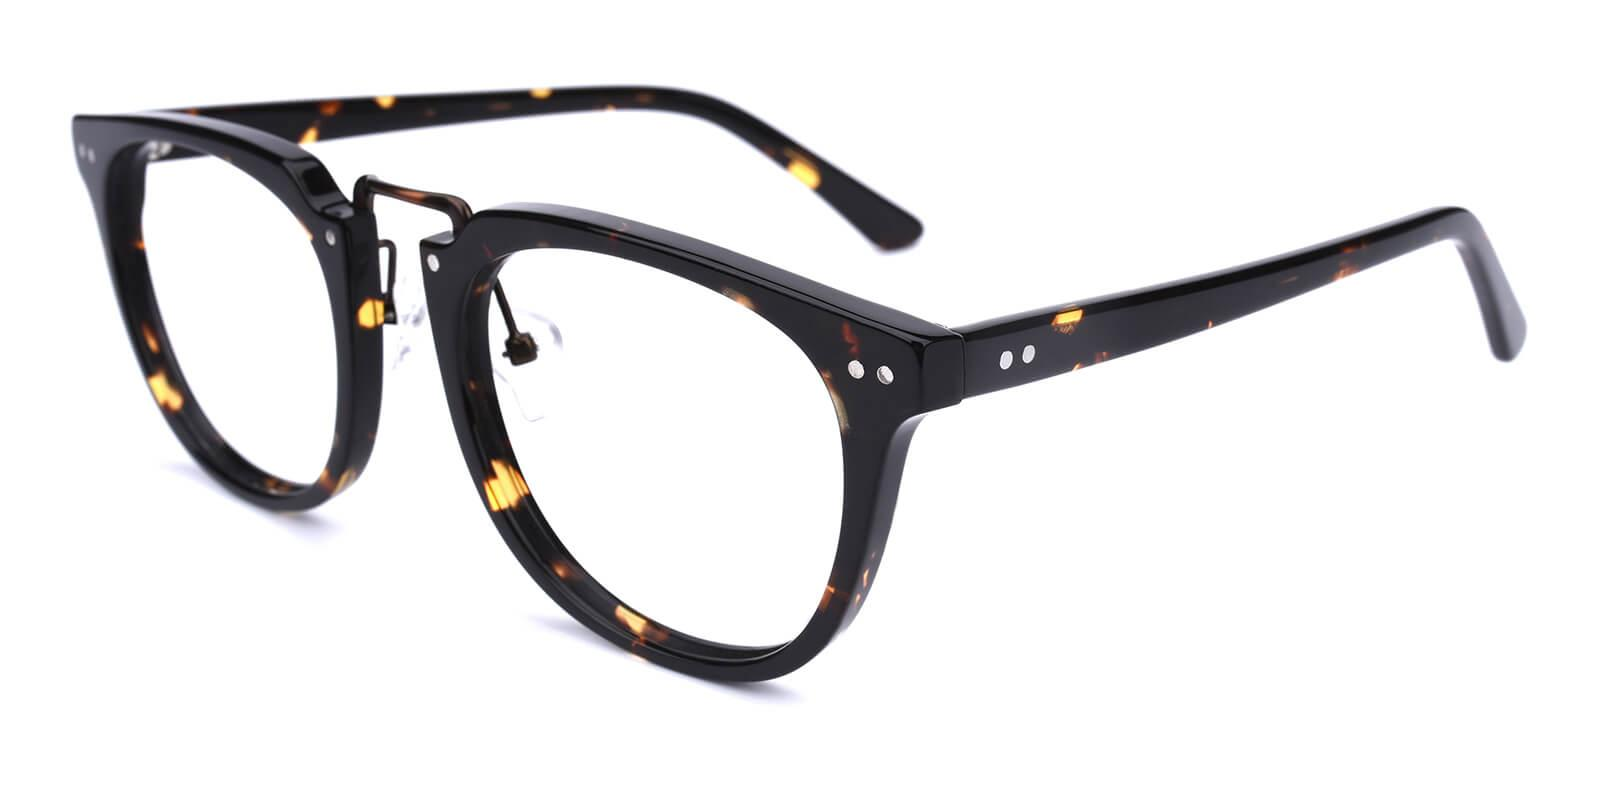 Crave-Tortoise-Square-Acetate-Eyeglasses-additional1